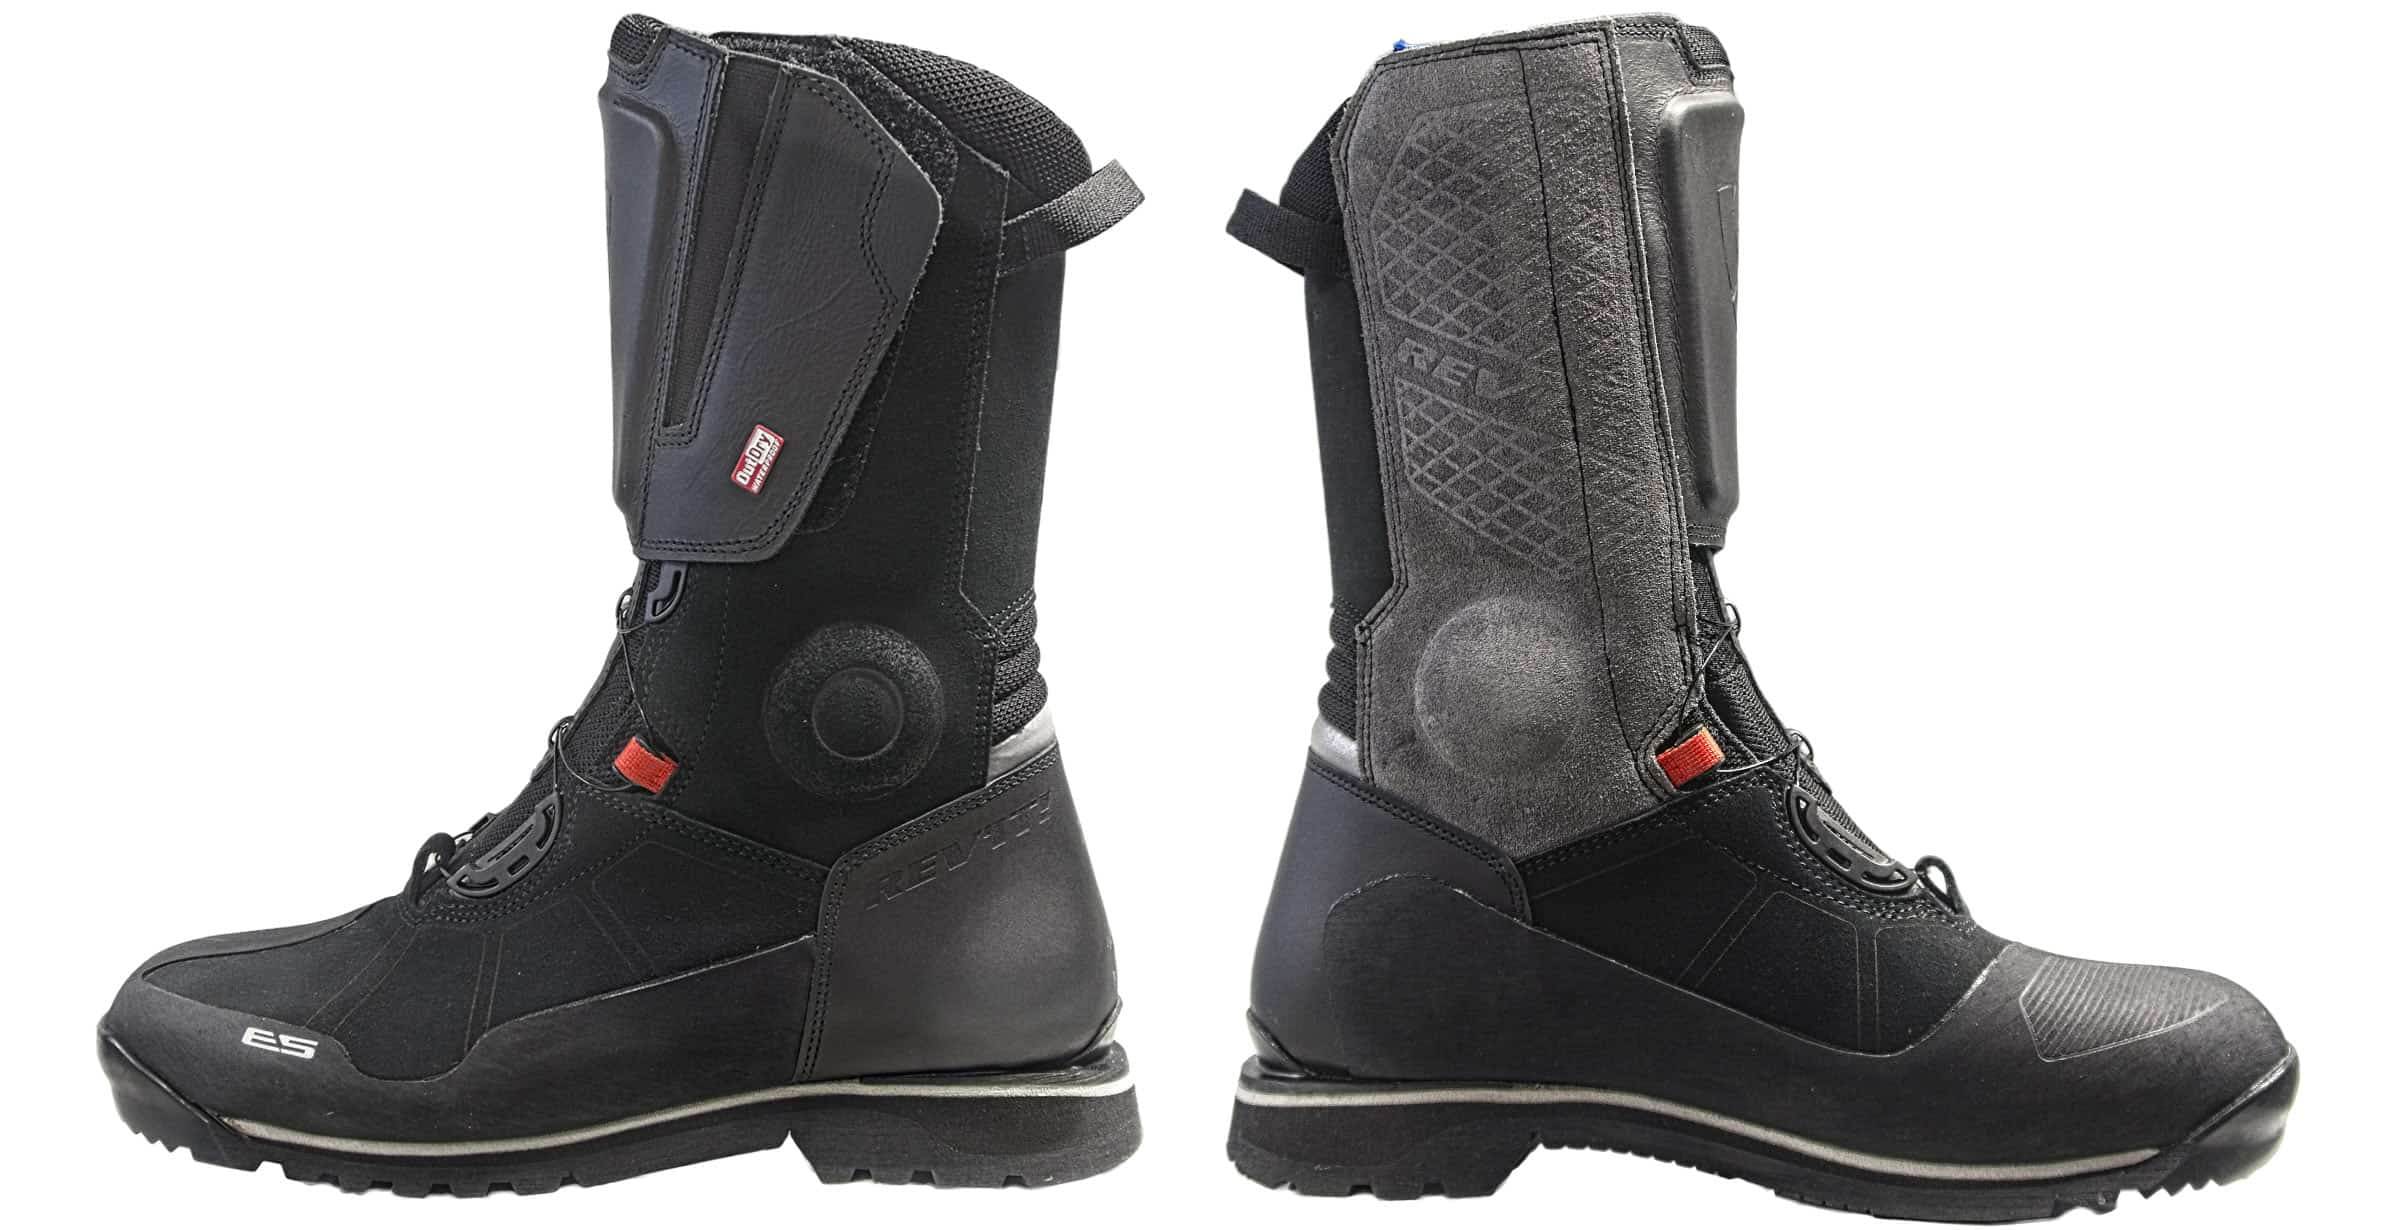 Rev It Discovery Adventure Motorcycle Boots Review